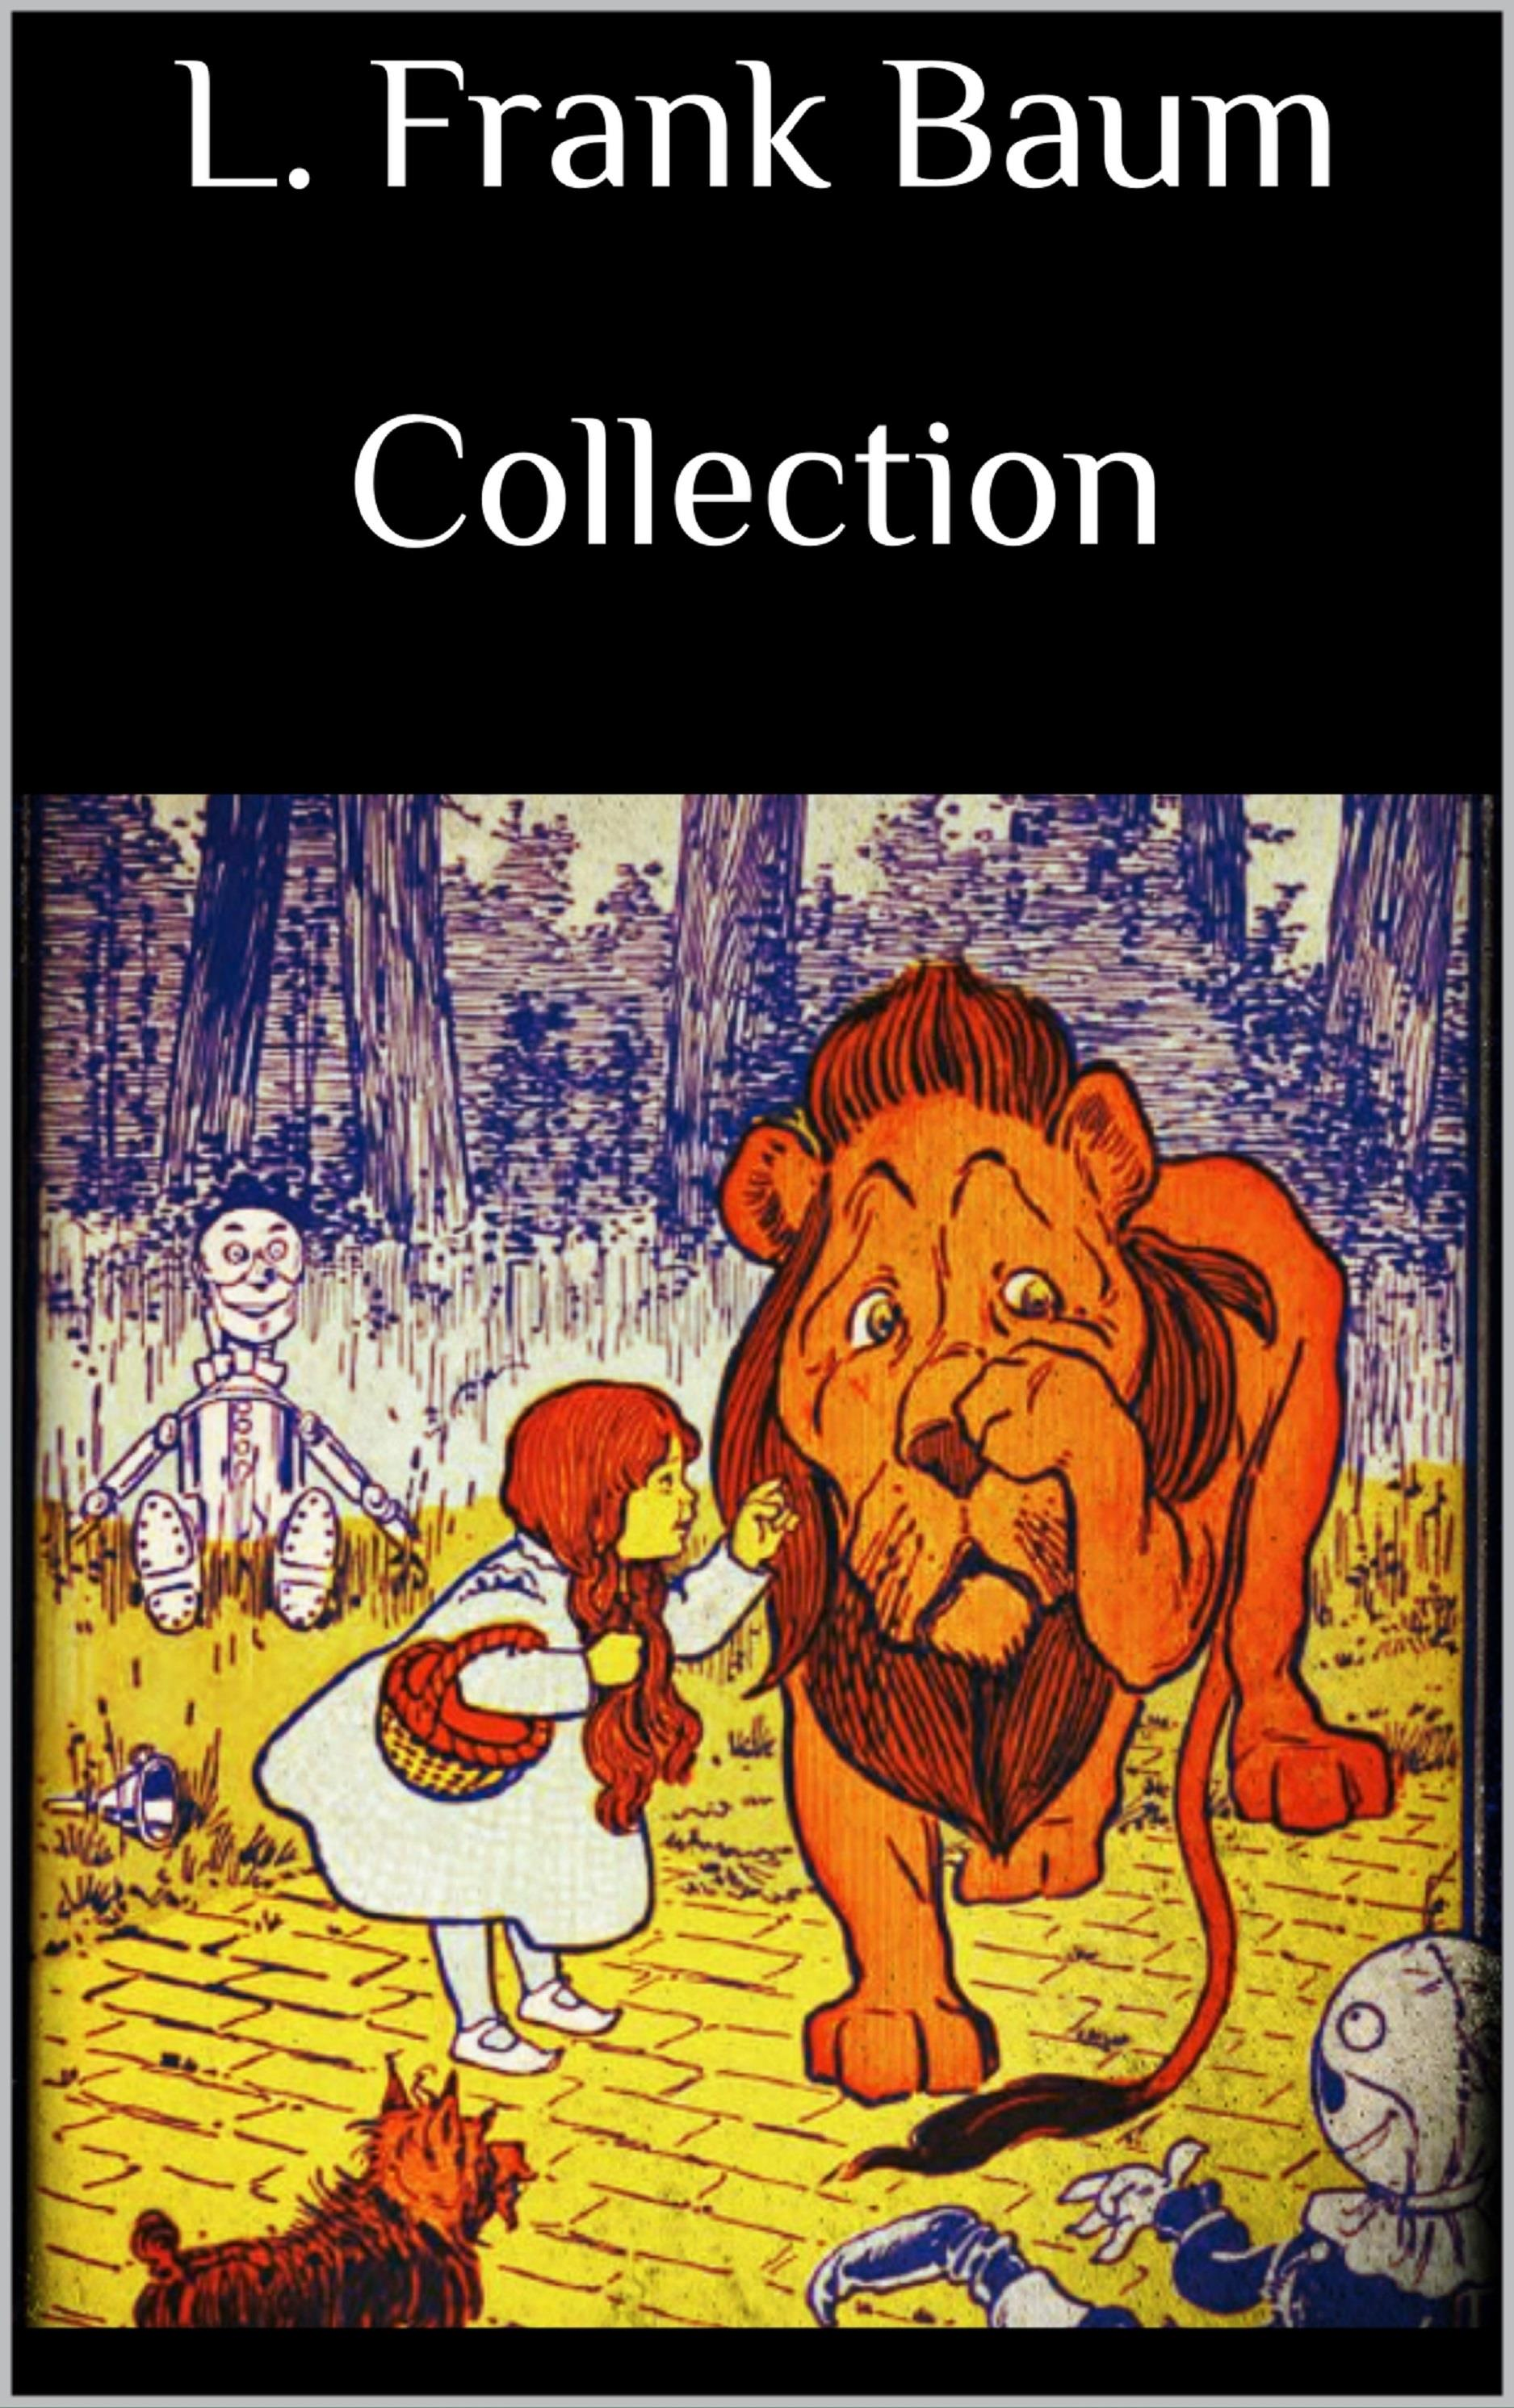 L. Frank Baum Collection